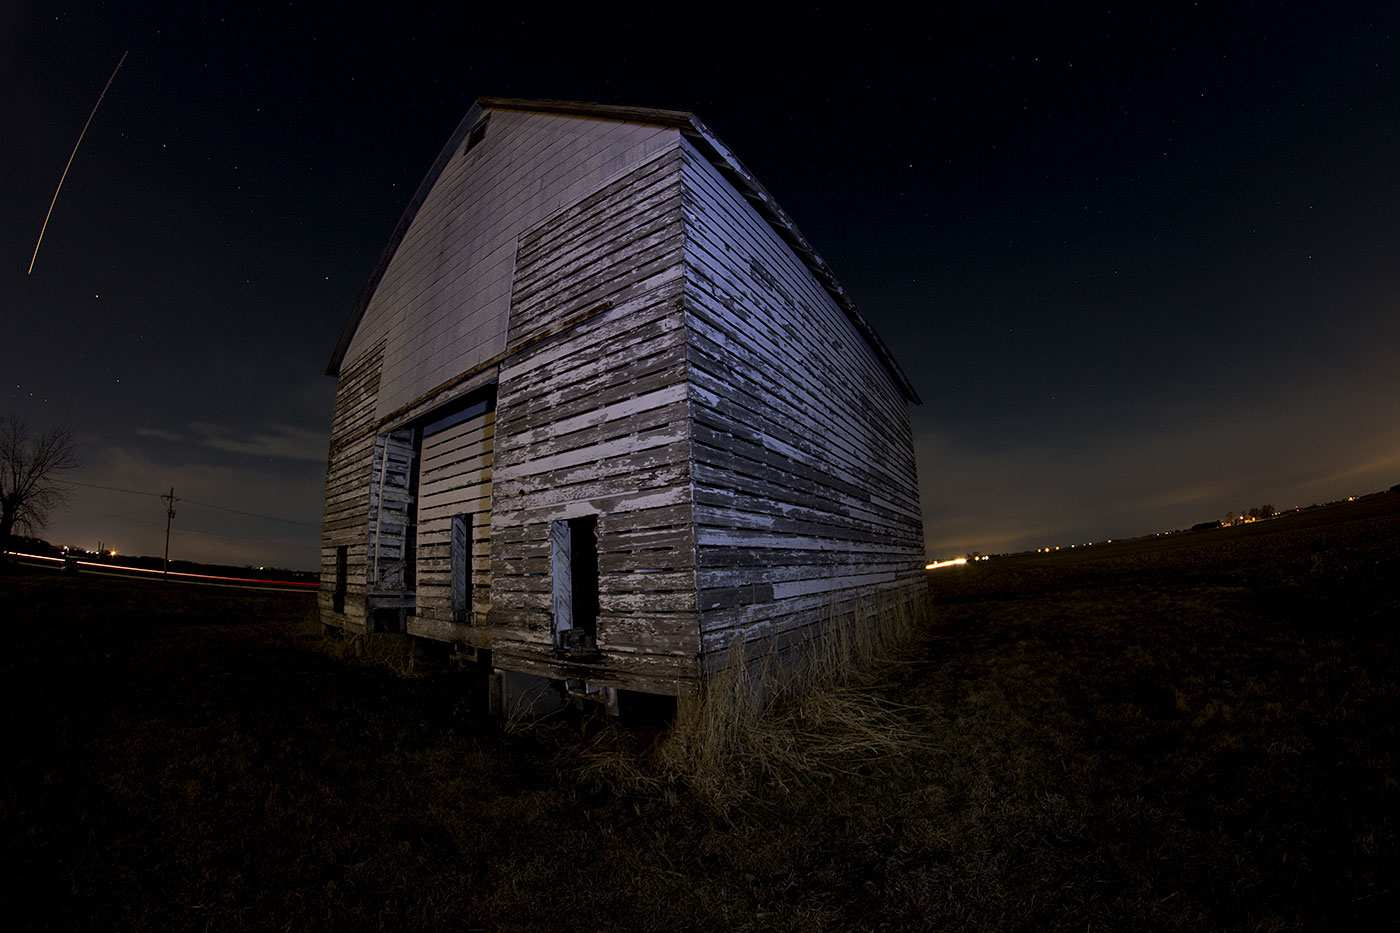 Corn crib fisheye